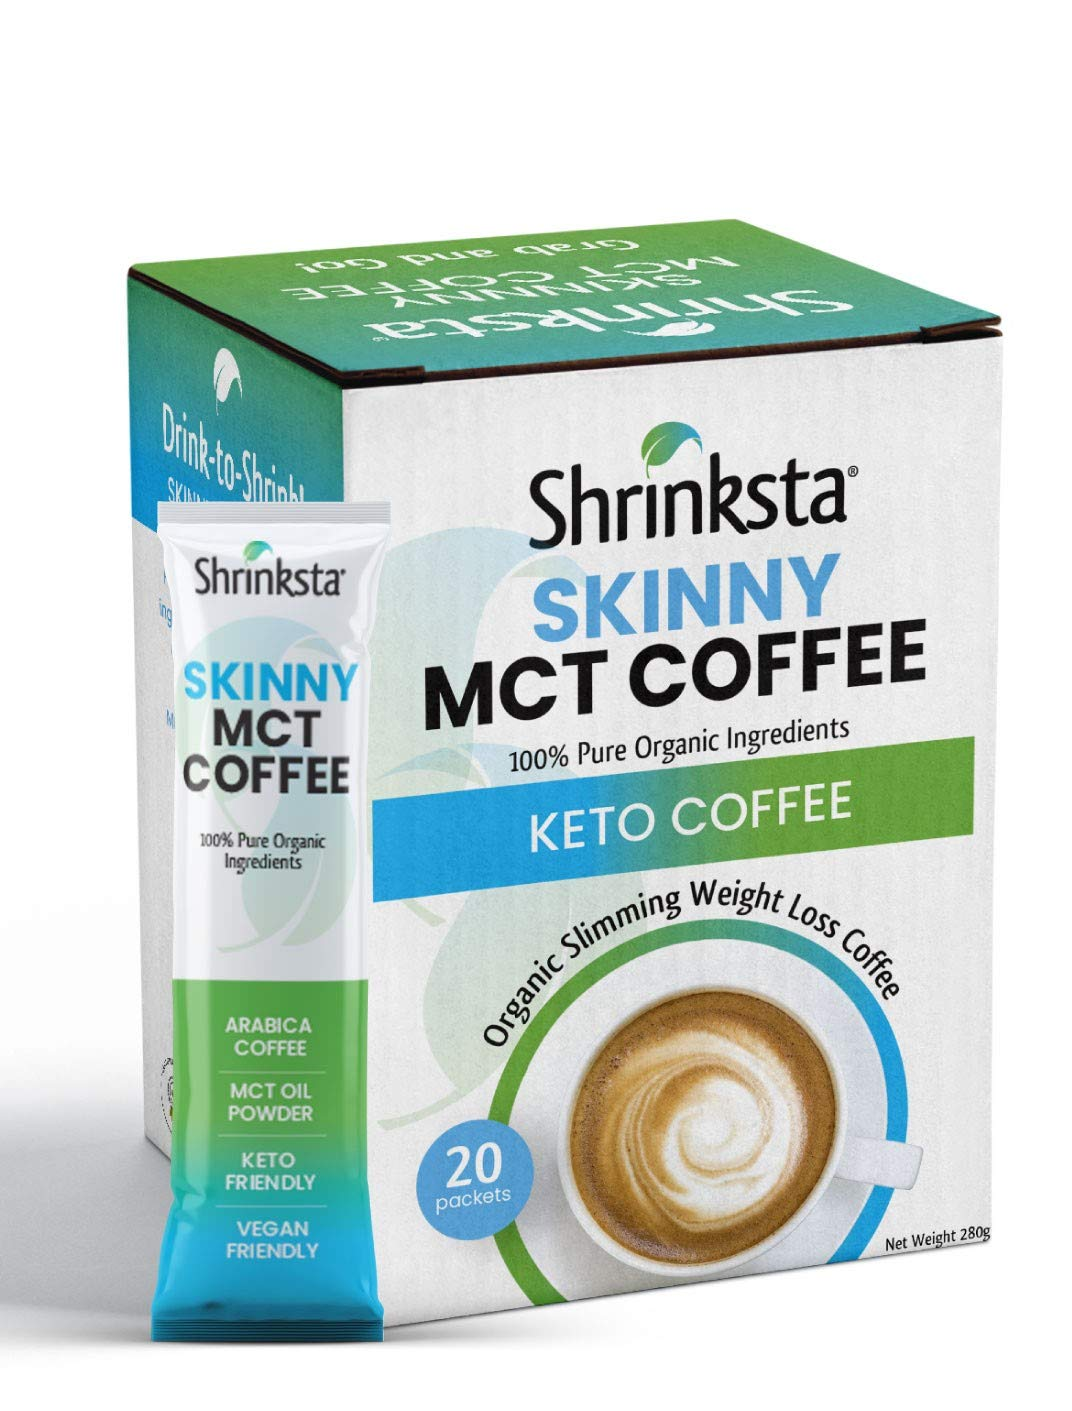 Shrinksta Keto Coffee with MCT Oil, Weight Loss Coffee, Instant Coffee Mix, Perfect for on the Go, Energy, Focus & Fat Burning | 20 Coffee Packets.